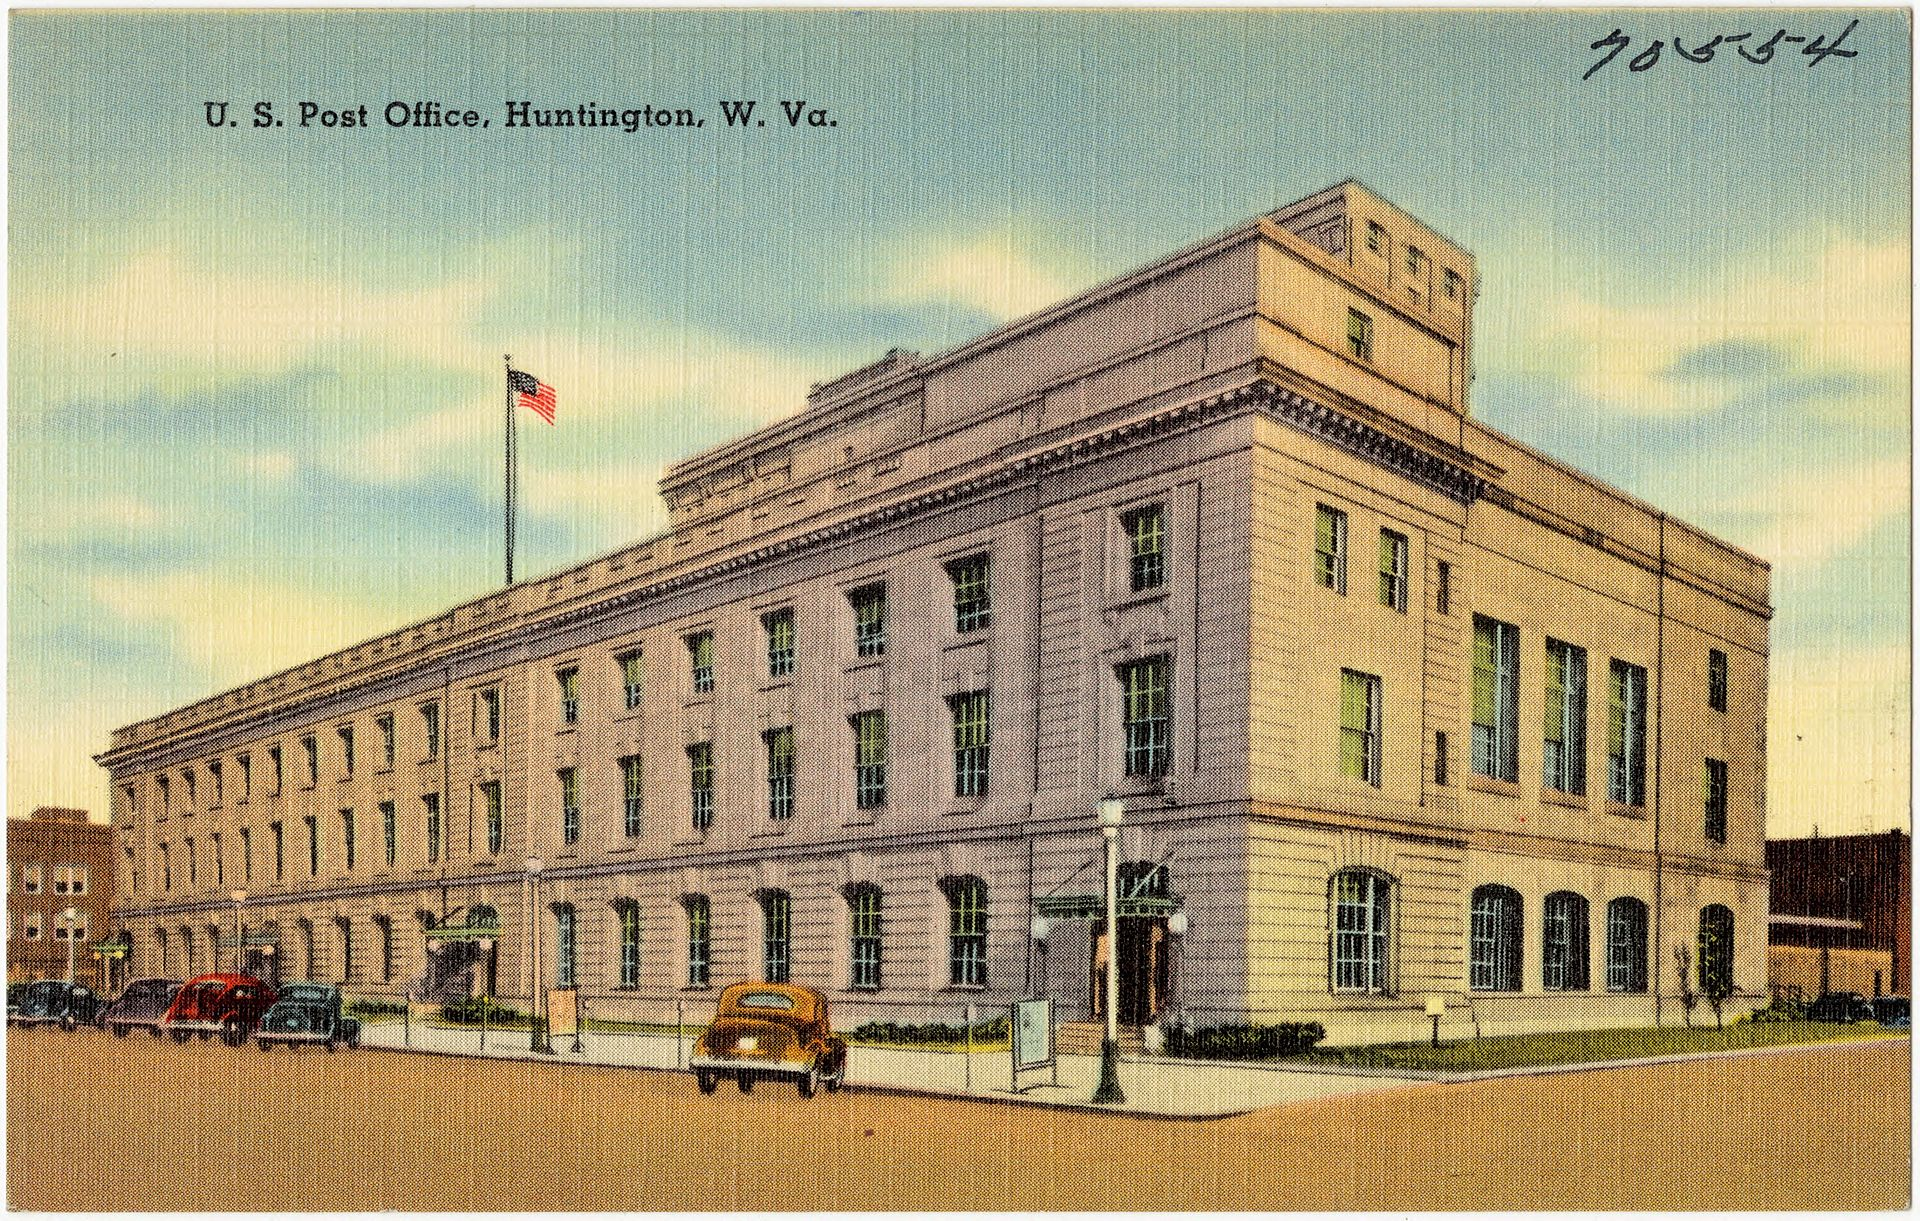 Historic postcard showing the building